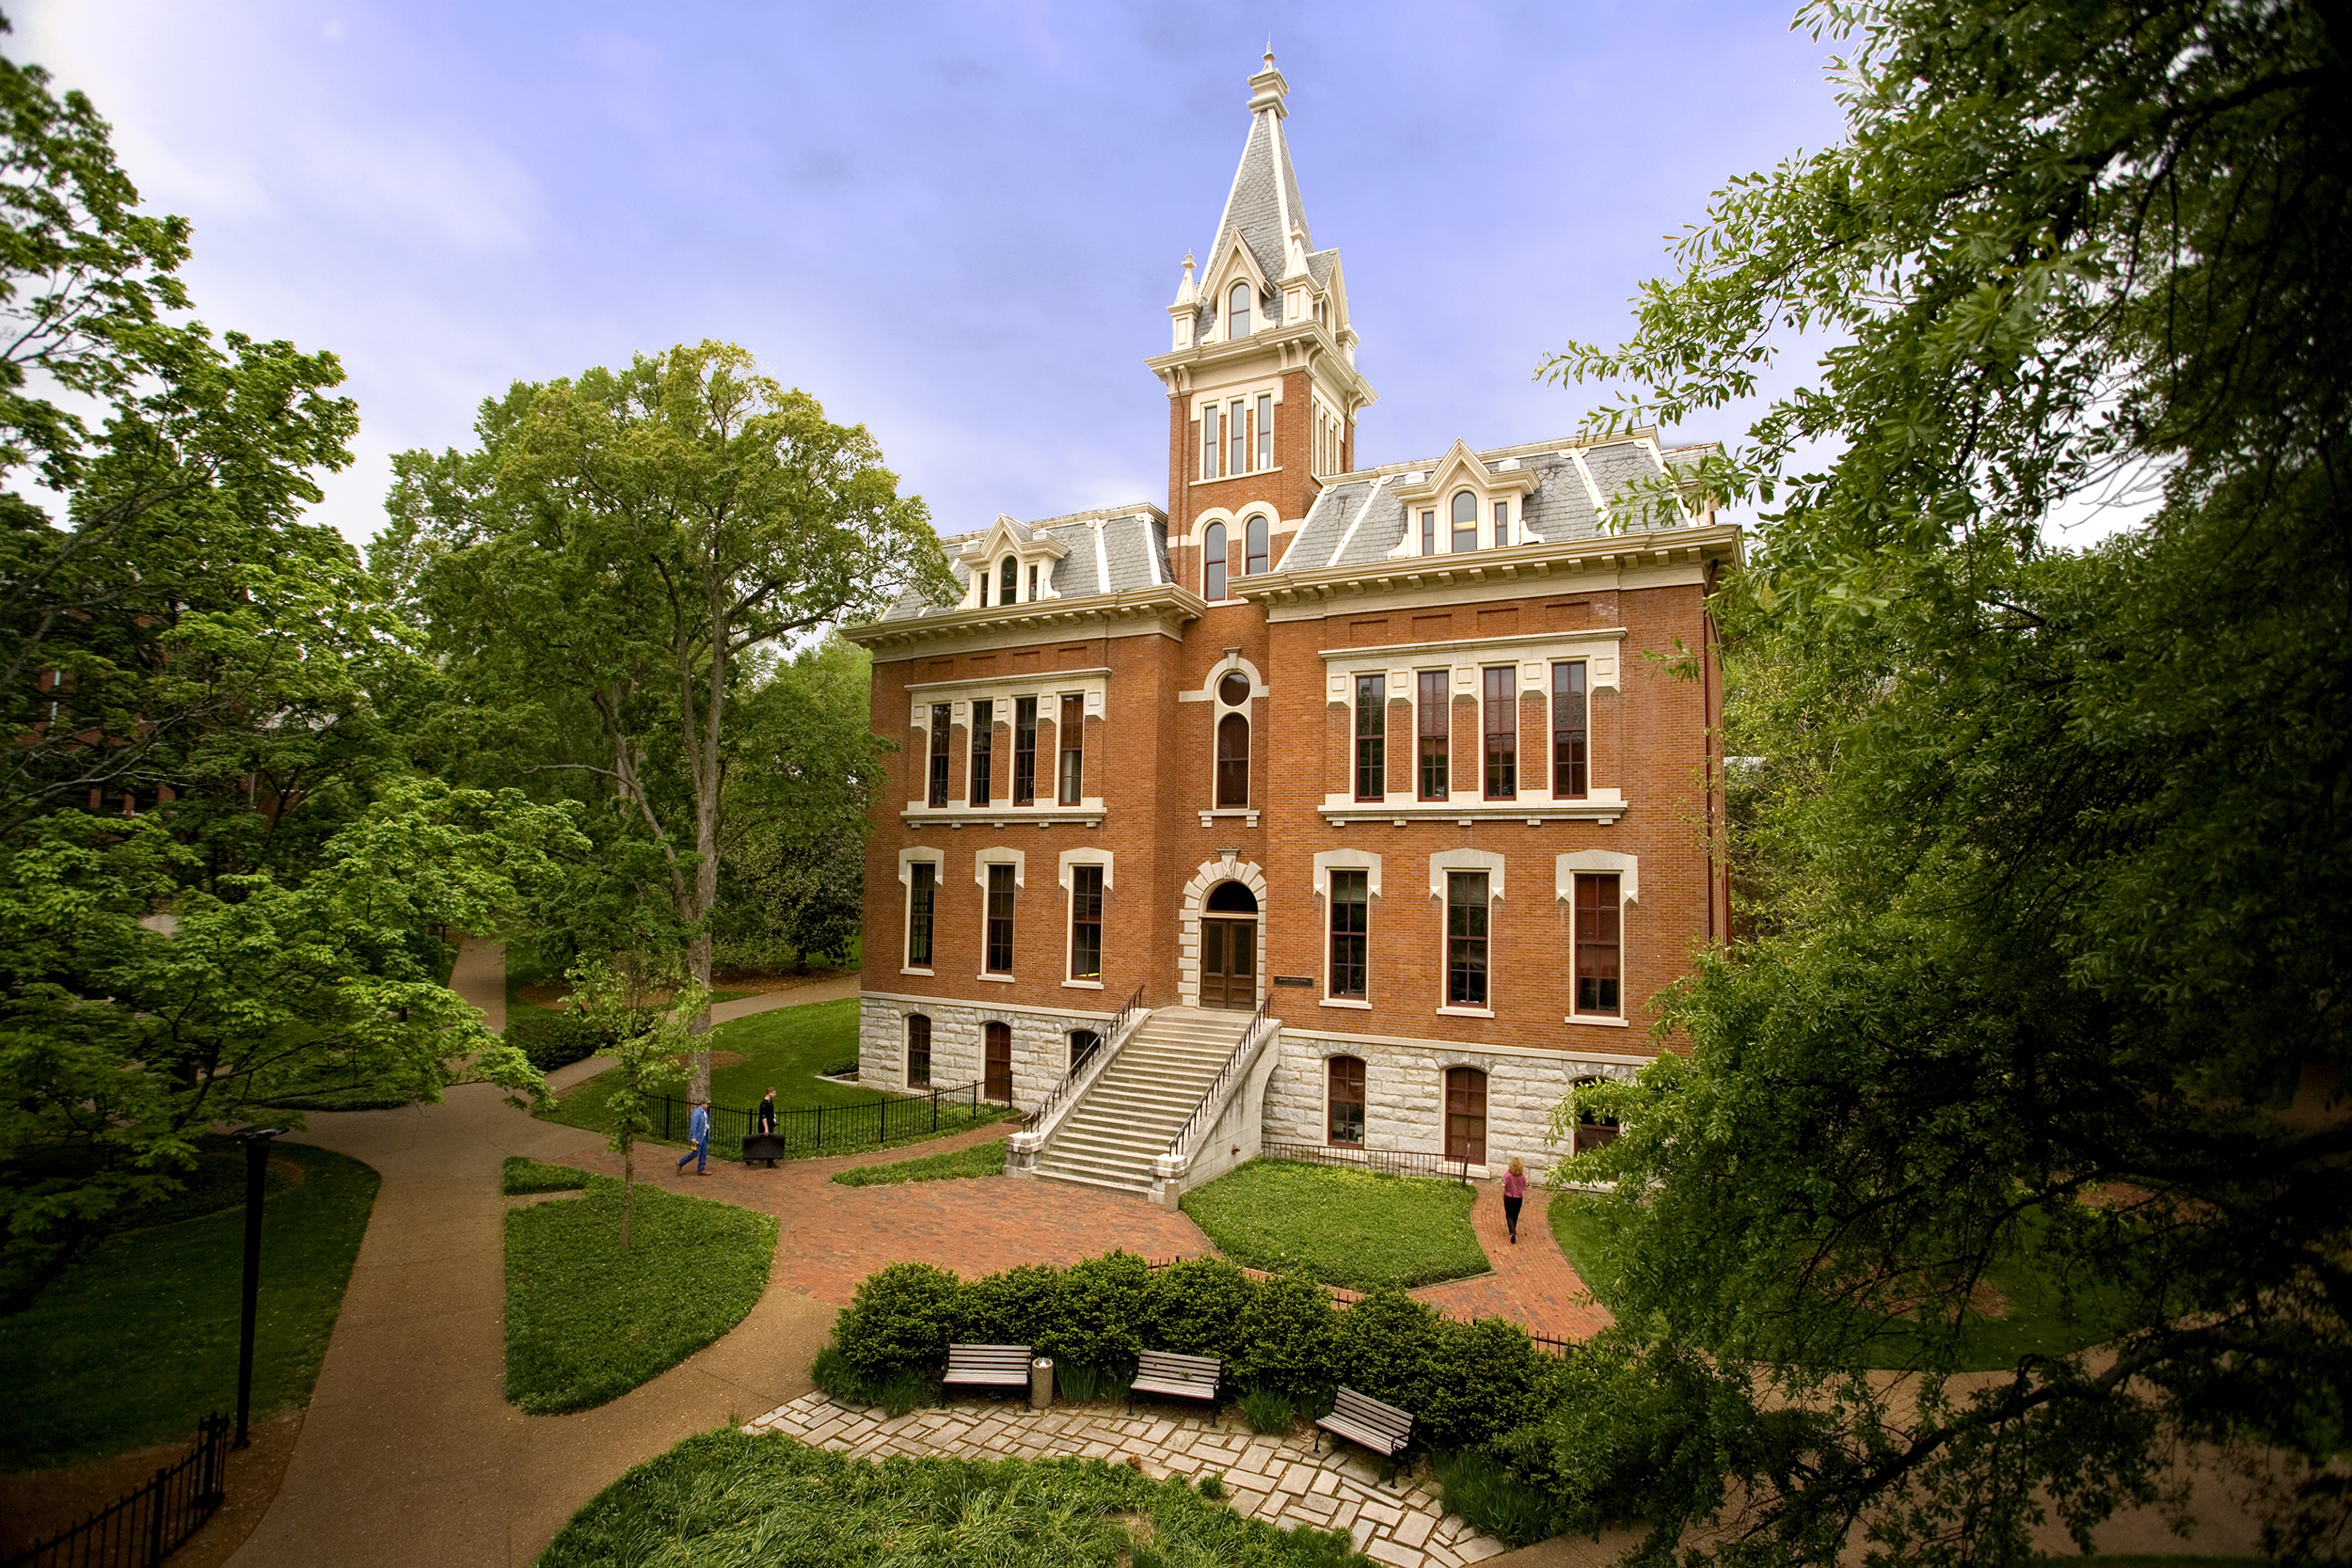 Students-at-Vanderbilt-leave-fraternities-and-sororities,-alleging-racism-and-insensitivity